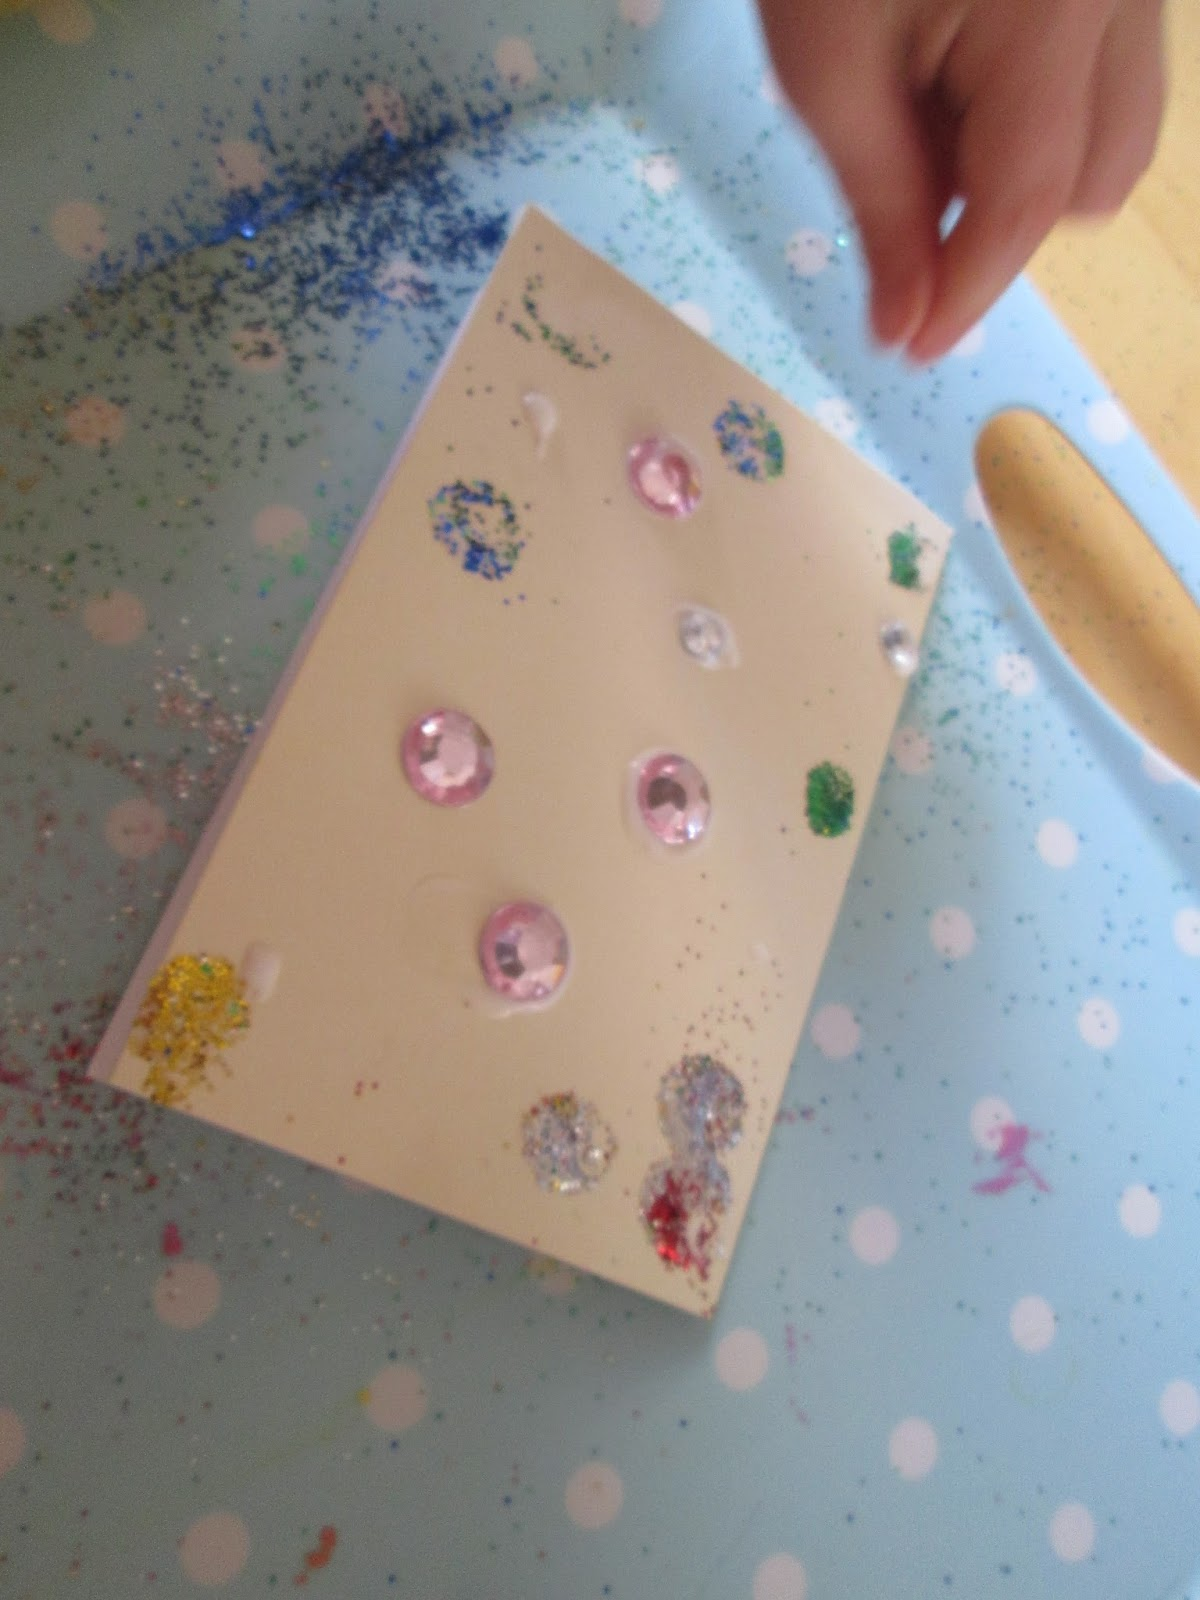 Shaking the glitter over the glue and card